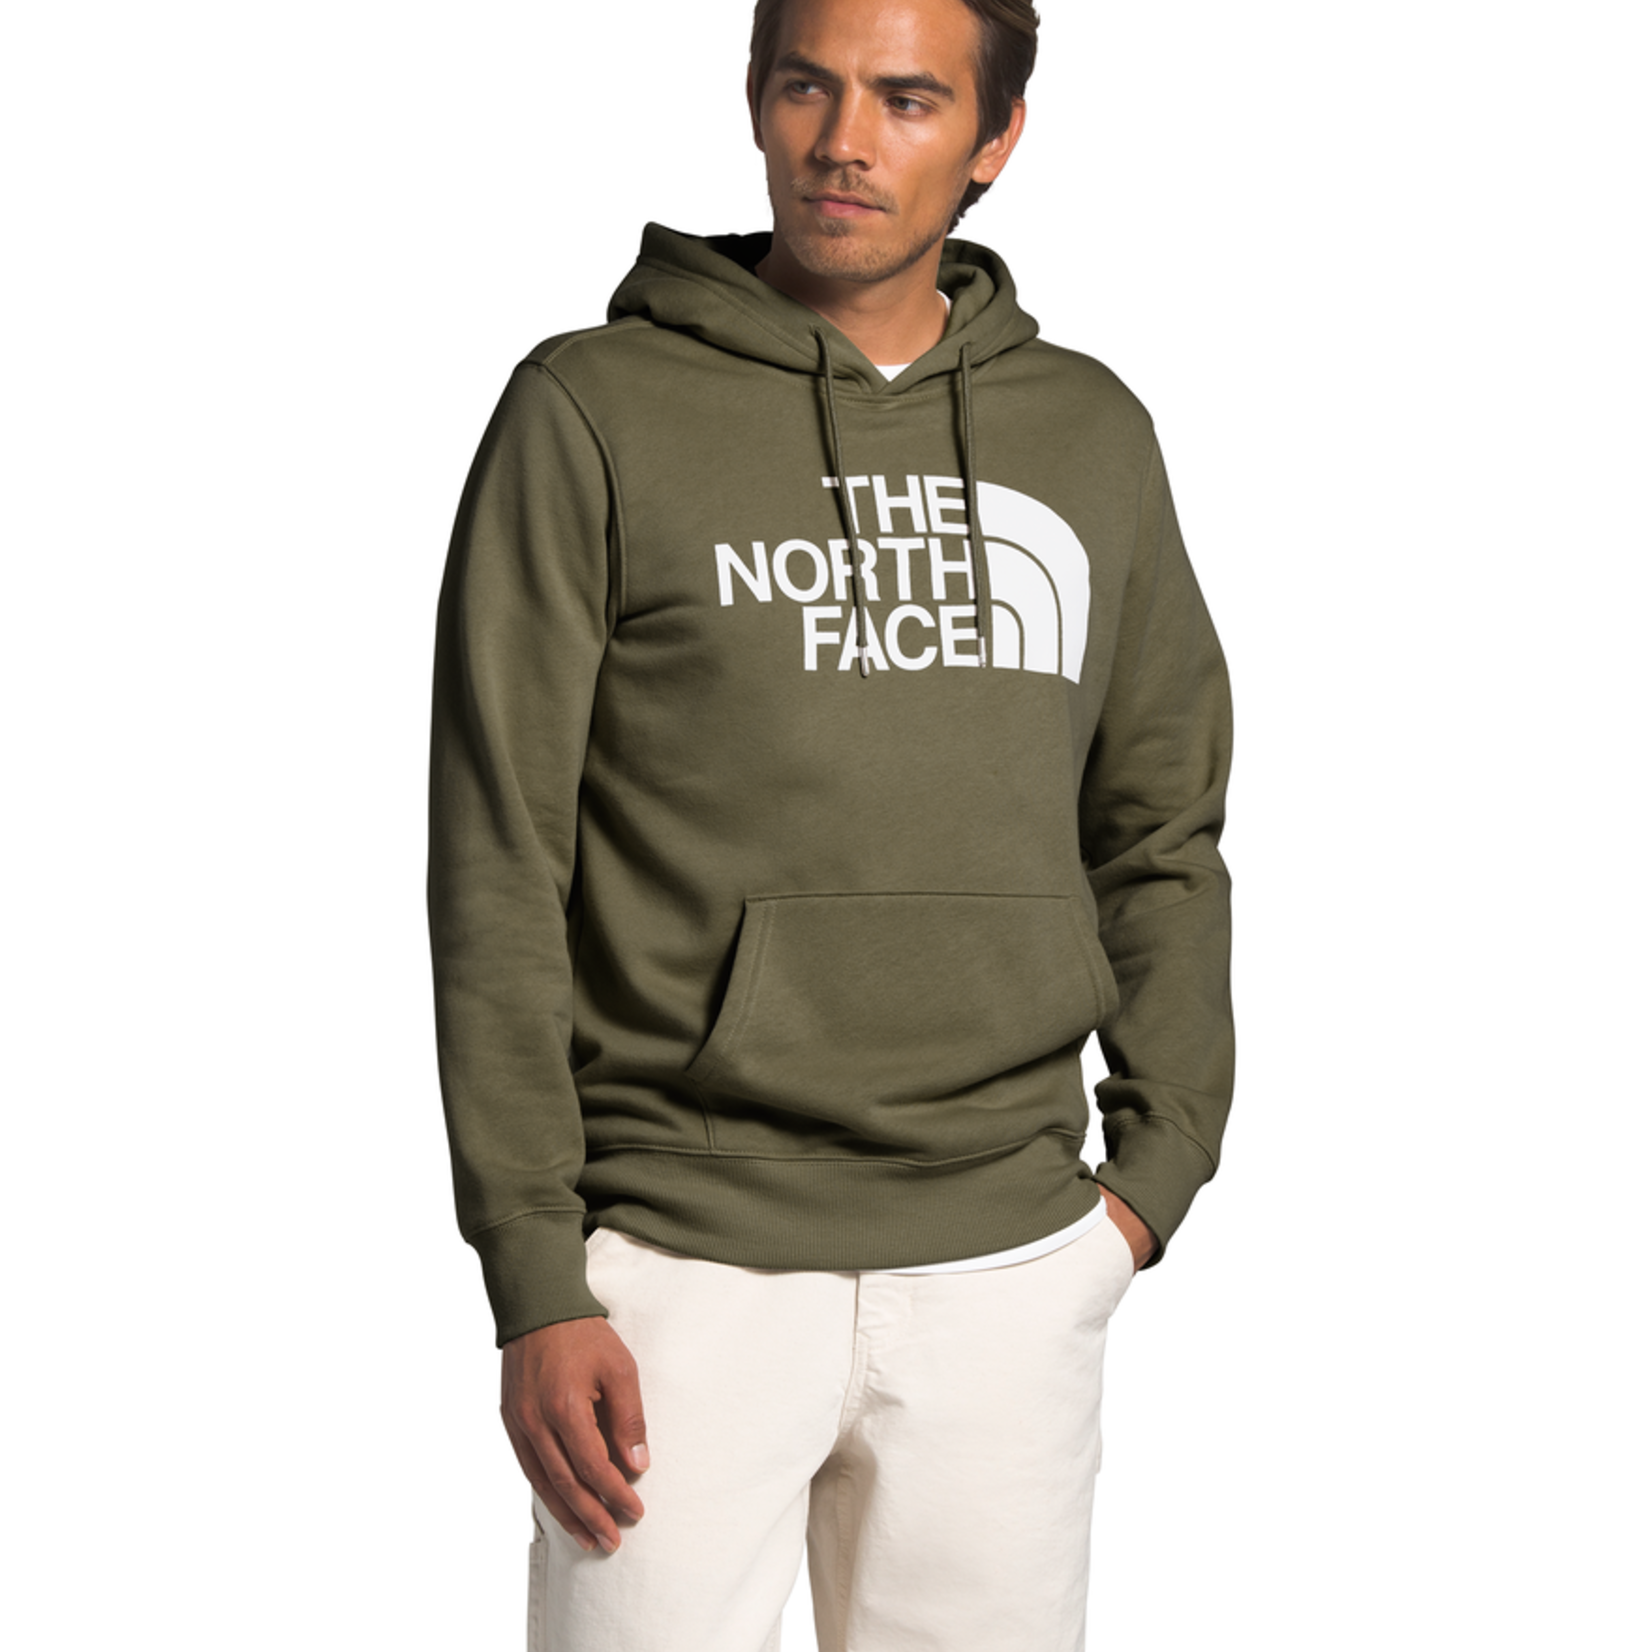 THE NORTH FACE M HALF DOME PULLOVER HOODIE - P-115413